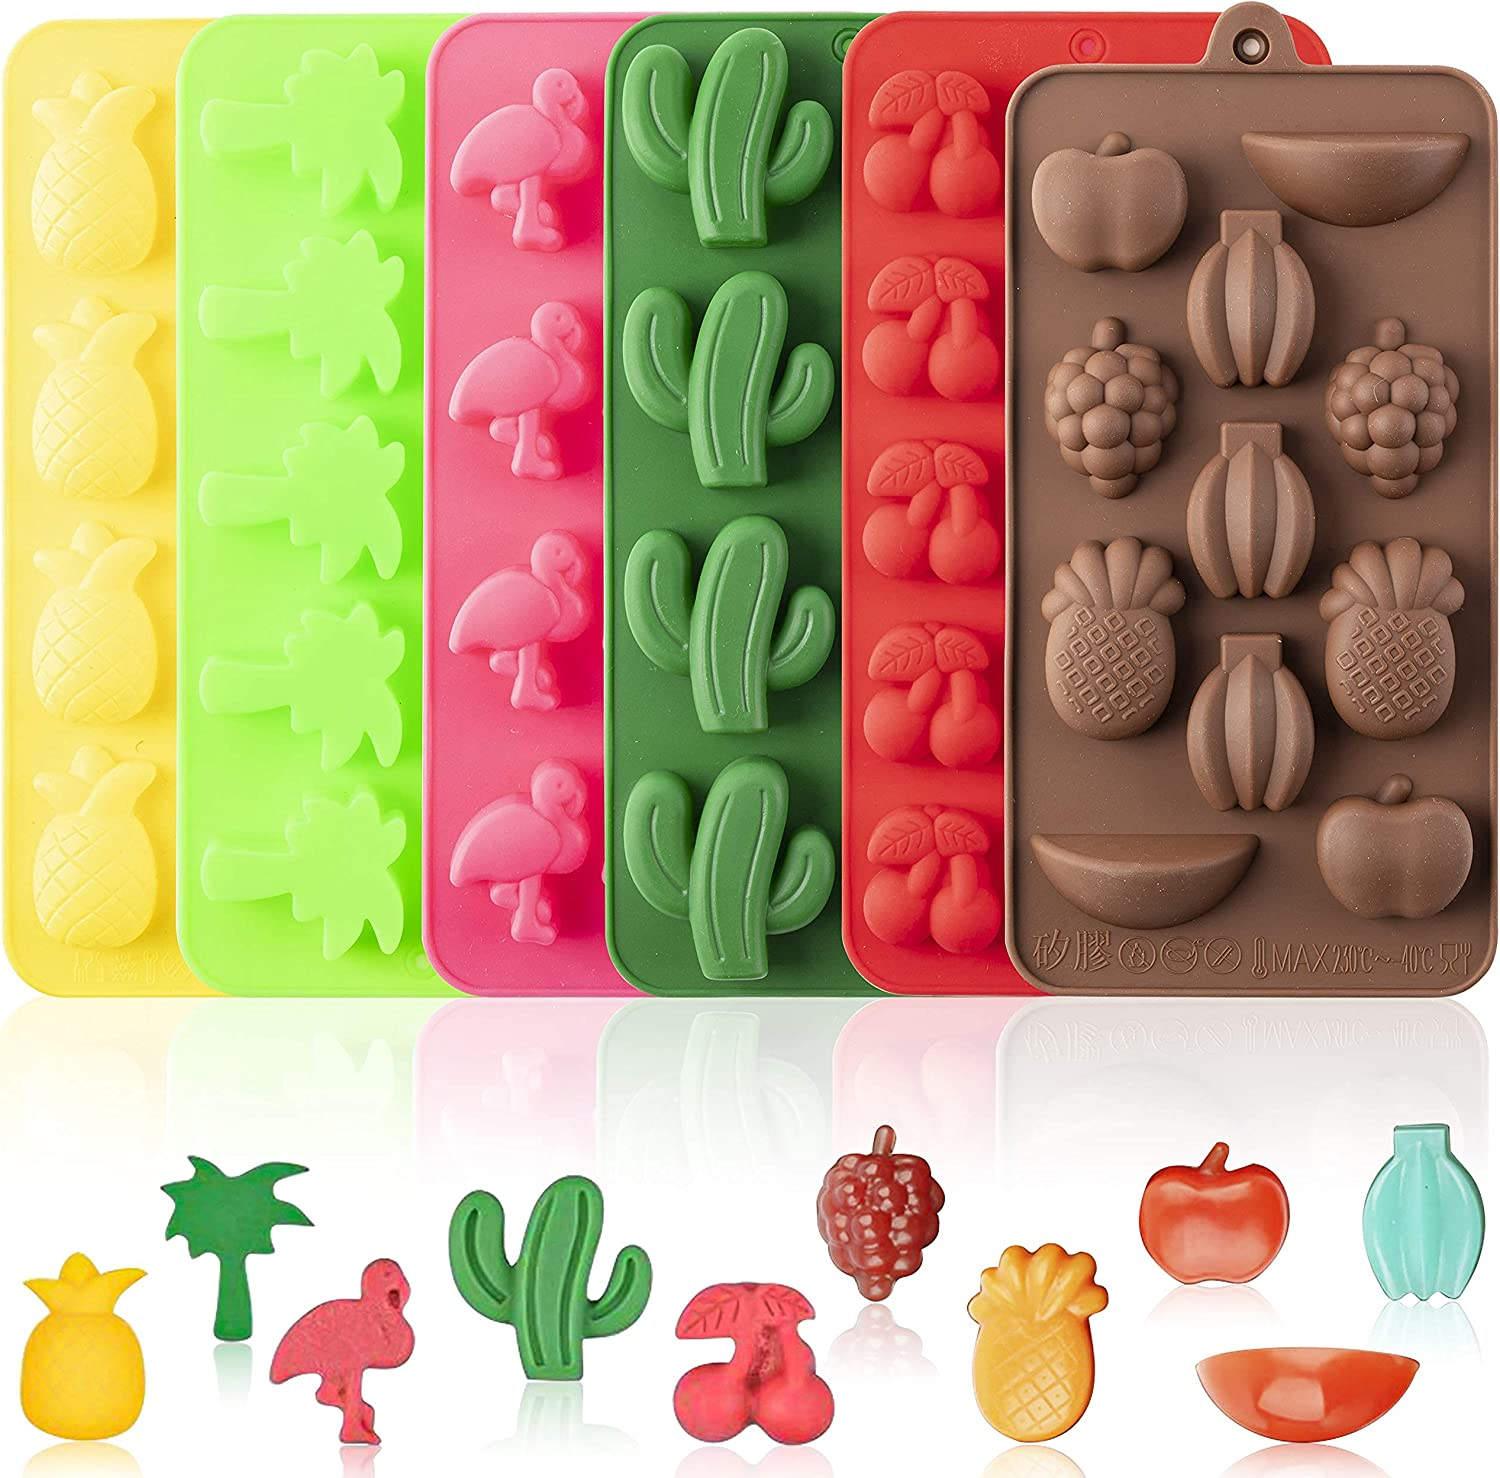 Cluo Pack of 6 Silicone Molds Hawaiian Themed Max 46% OFF Pineapple Max 51% OFF Tropical